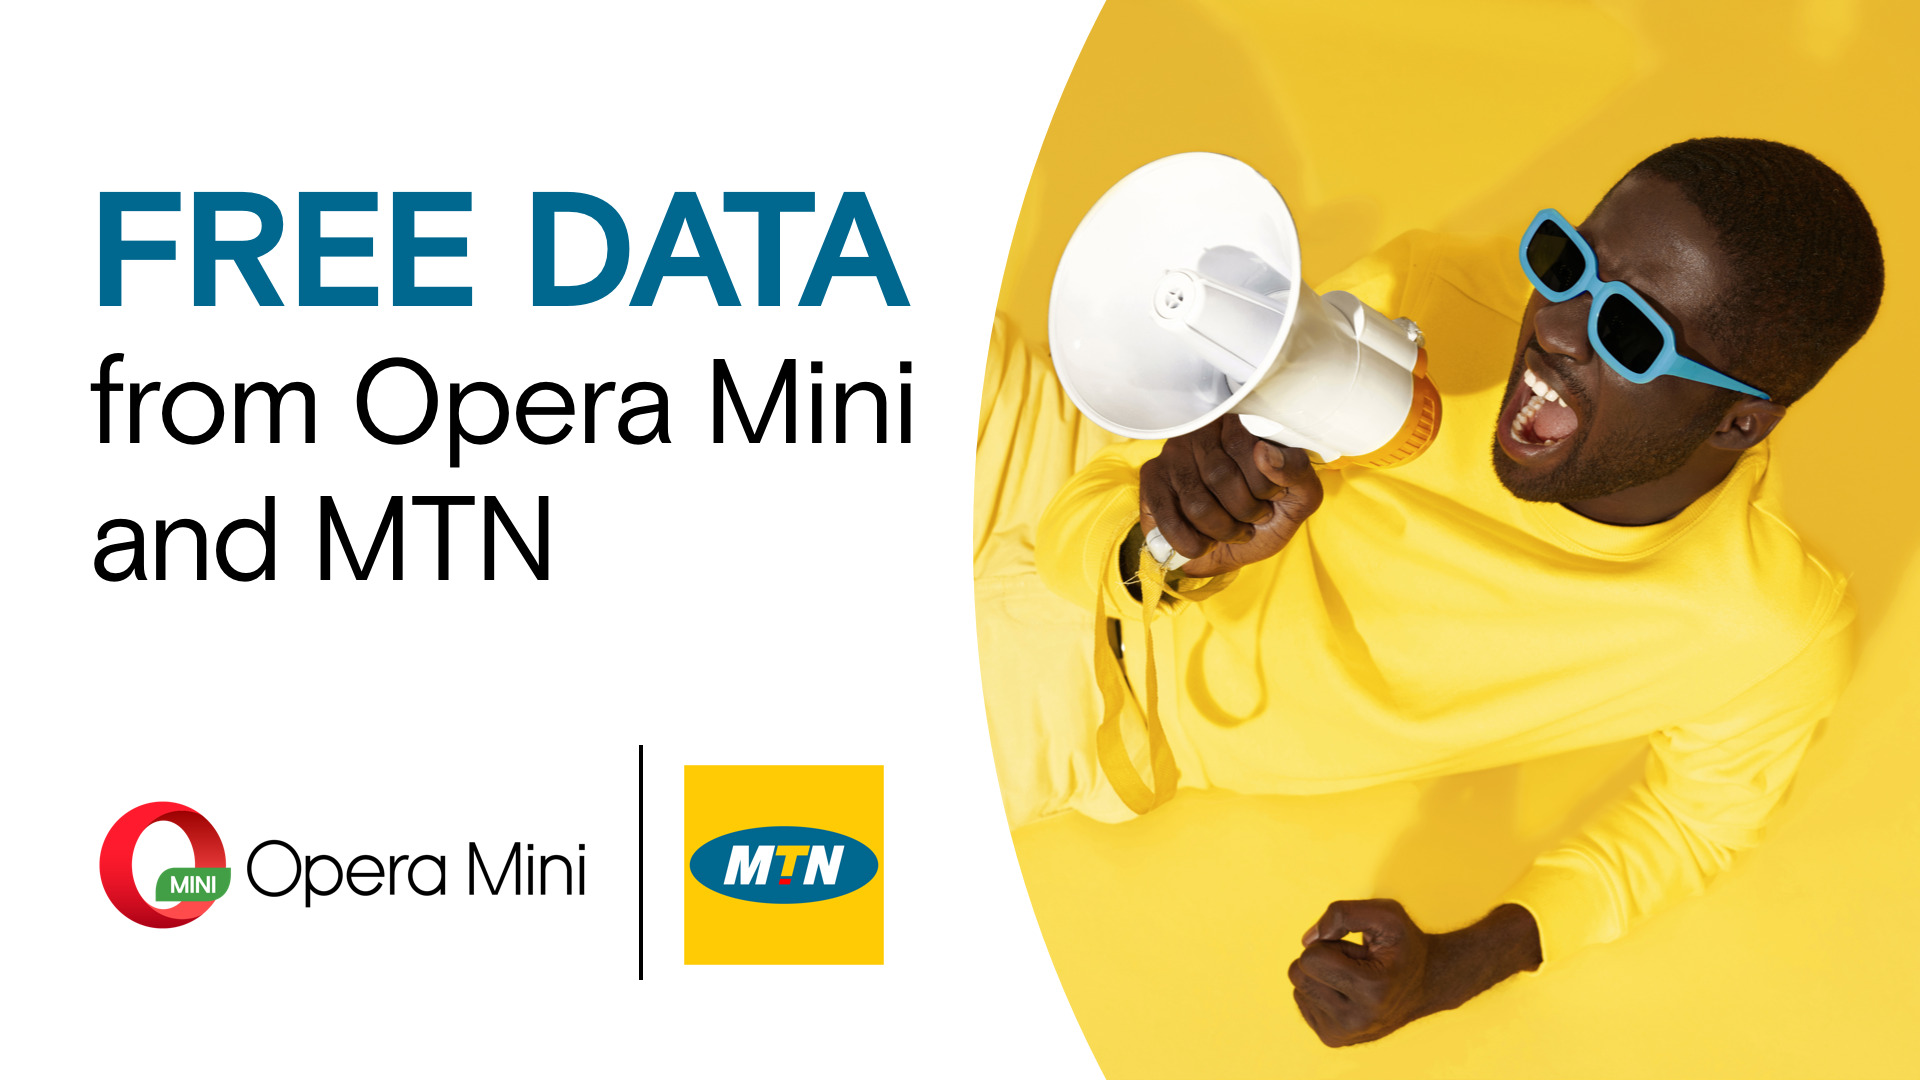 Free Browsing Up To 50mb Per Day With Opera Mini And Mtn In South Africa